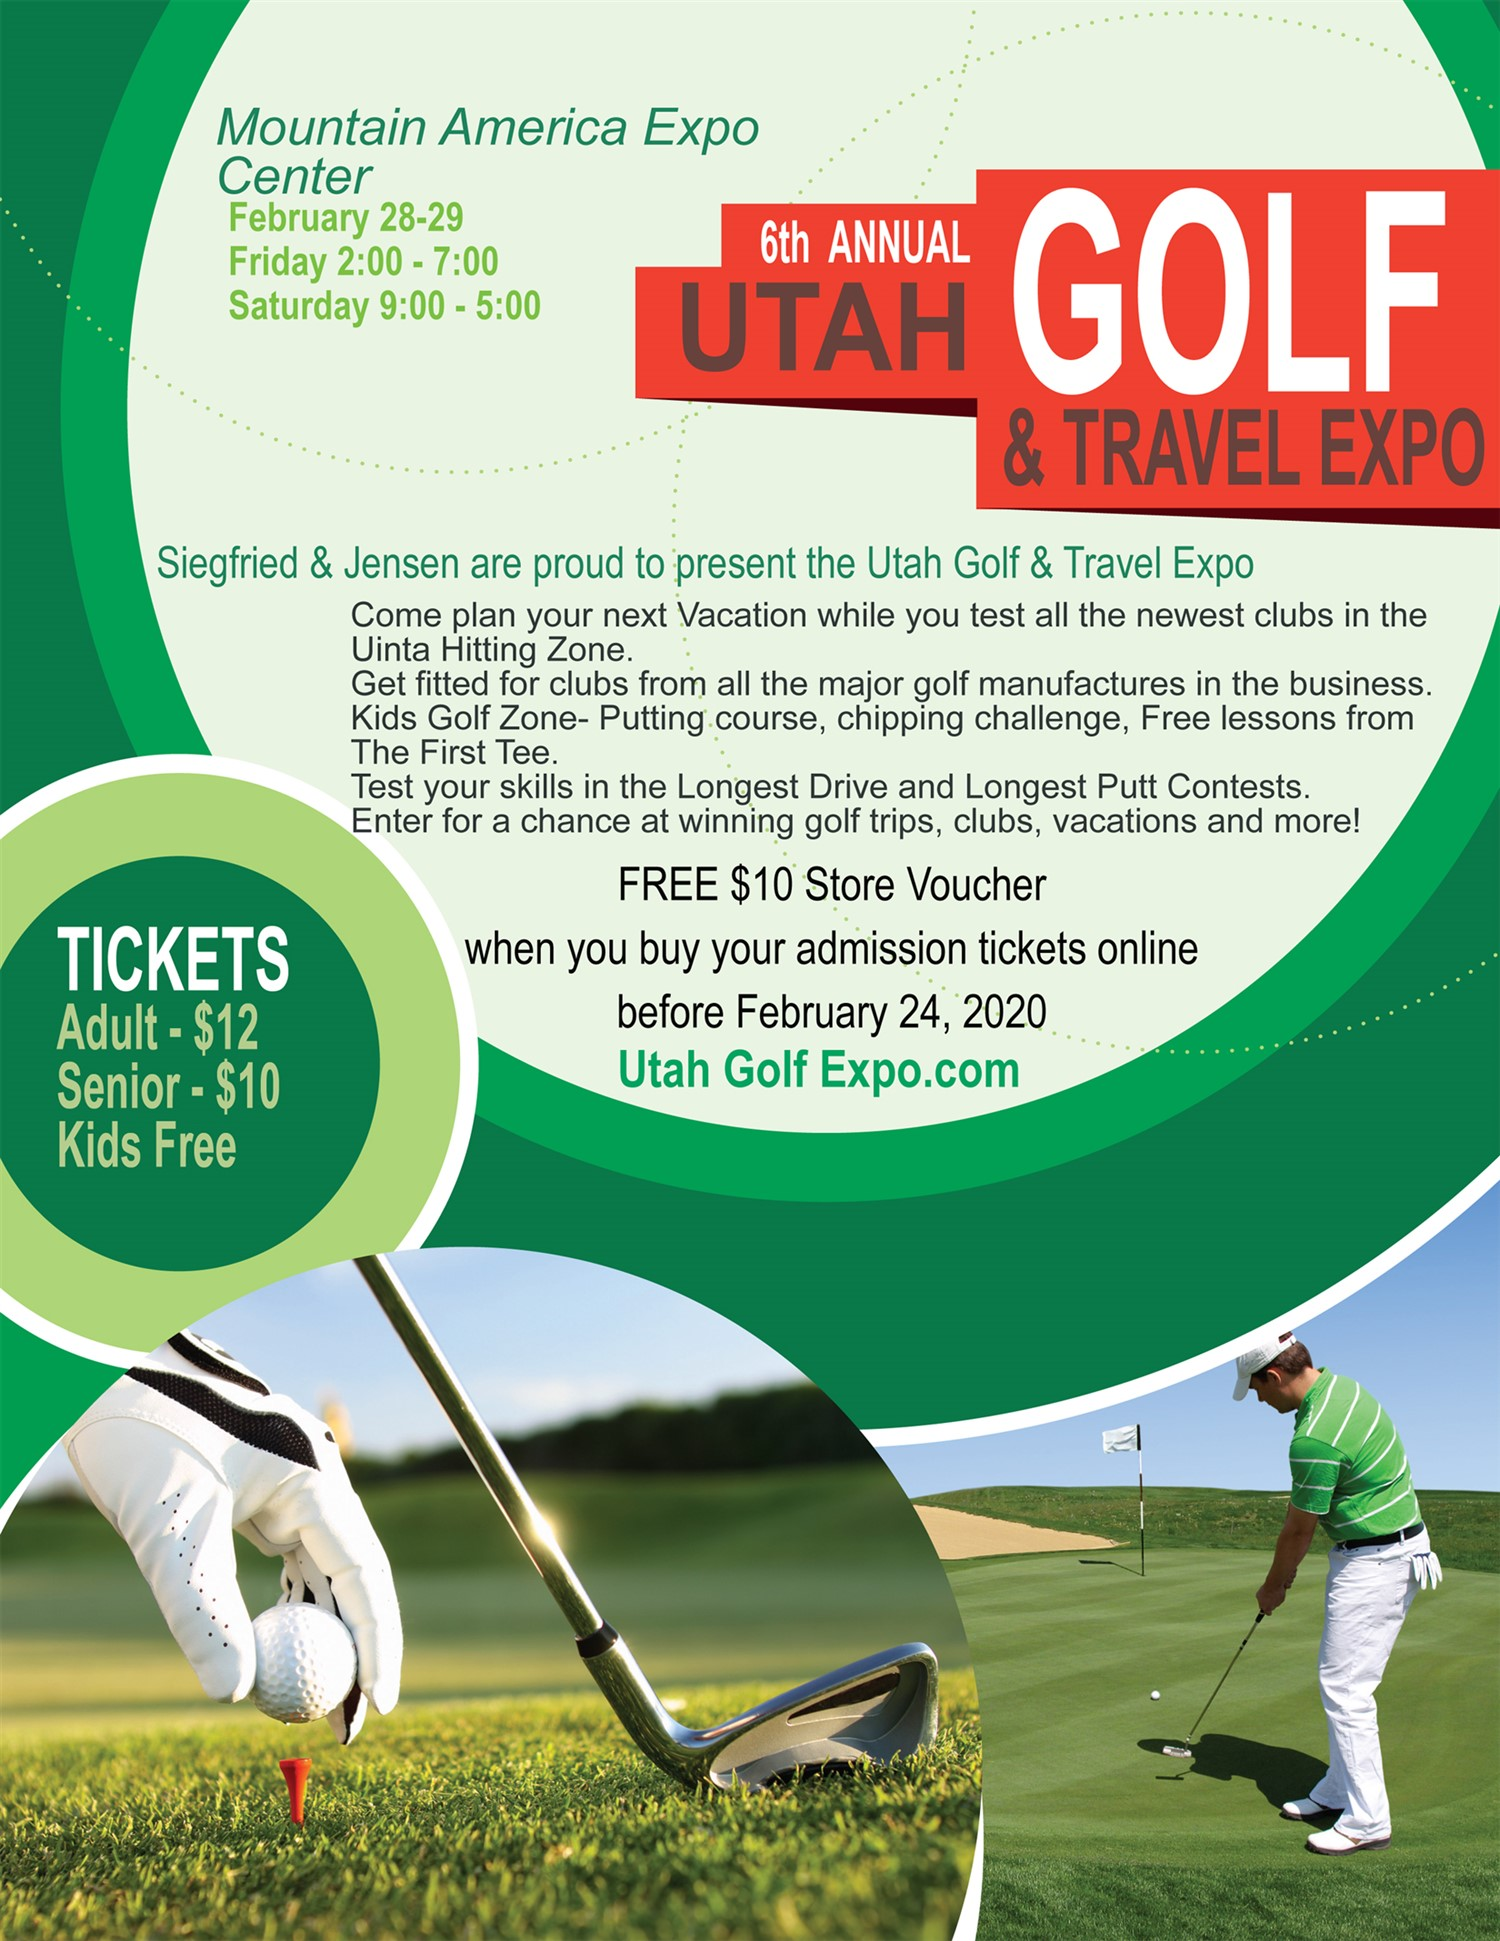 Utah Golf and Travel Expo 2020  on Feb 28, 14:00@Mountain America Expo Center - Buy tickets and Get information on www.utahgolfexpo.com